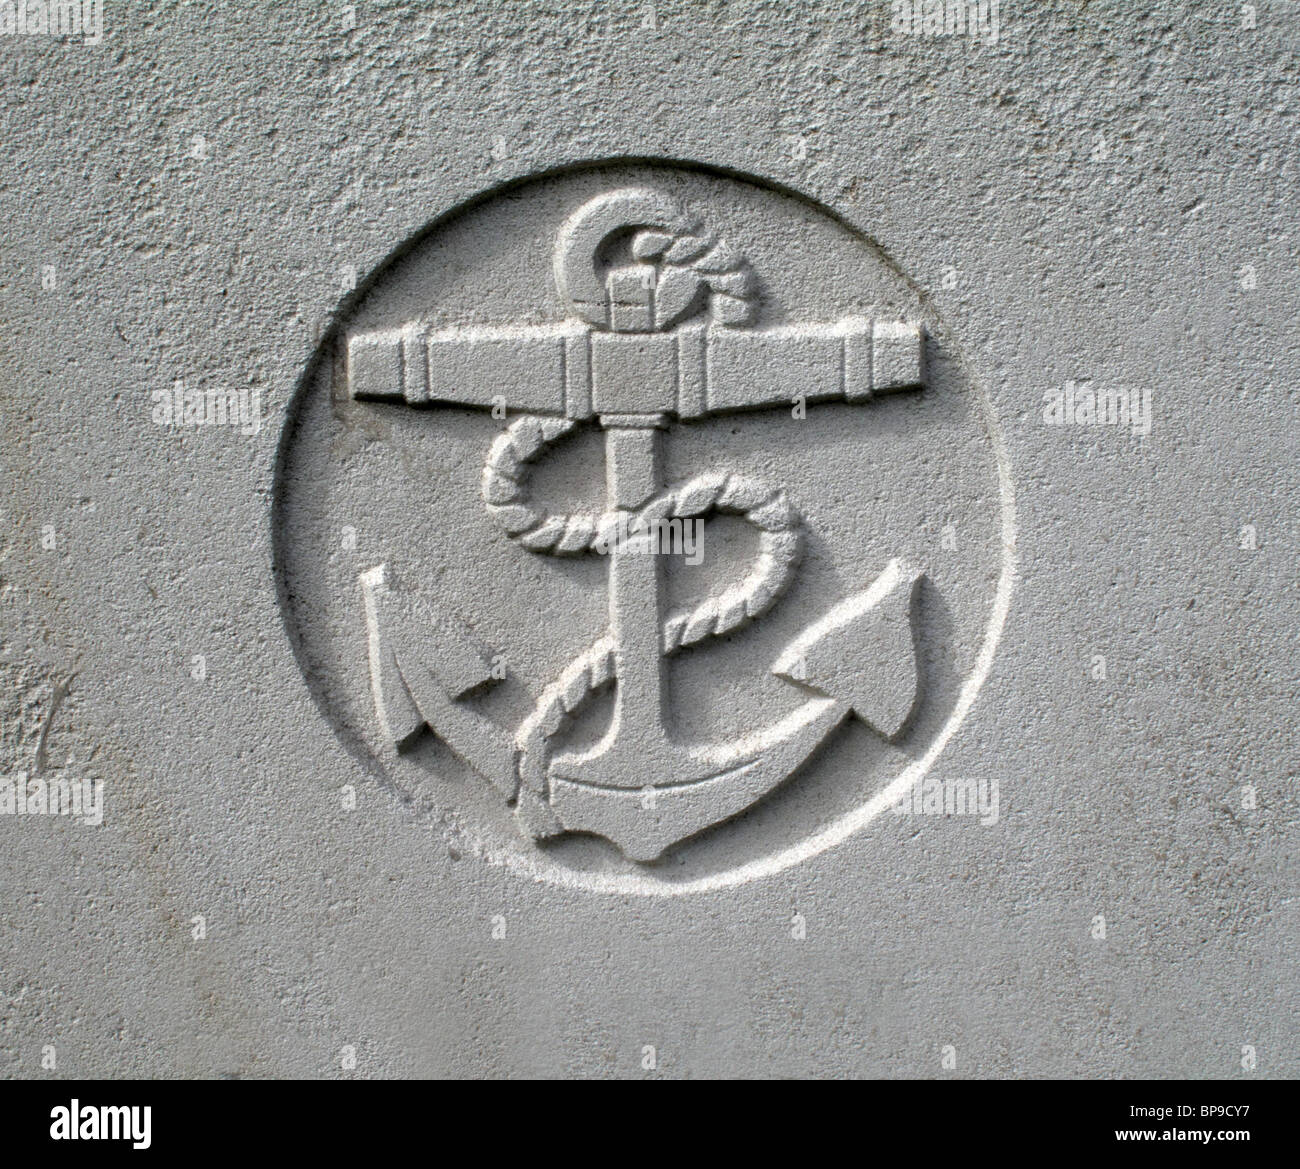 The Navy Symbol Of An Anchor On A Grave Stone Of A Naval Officer